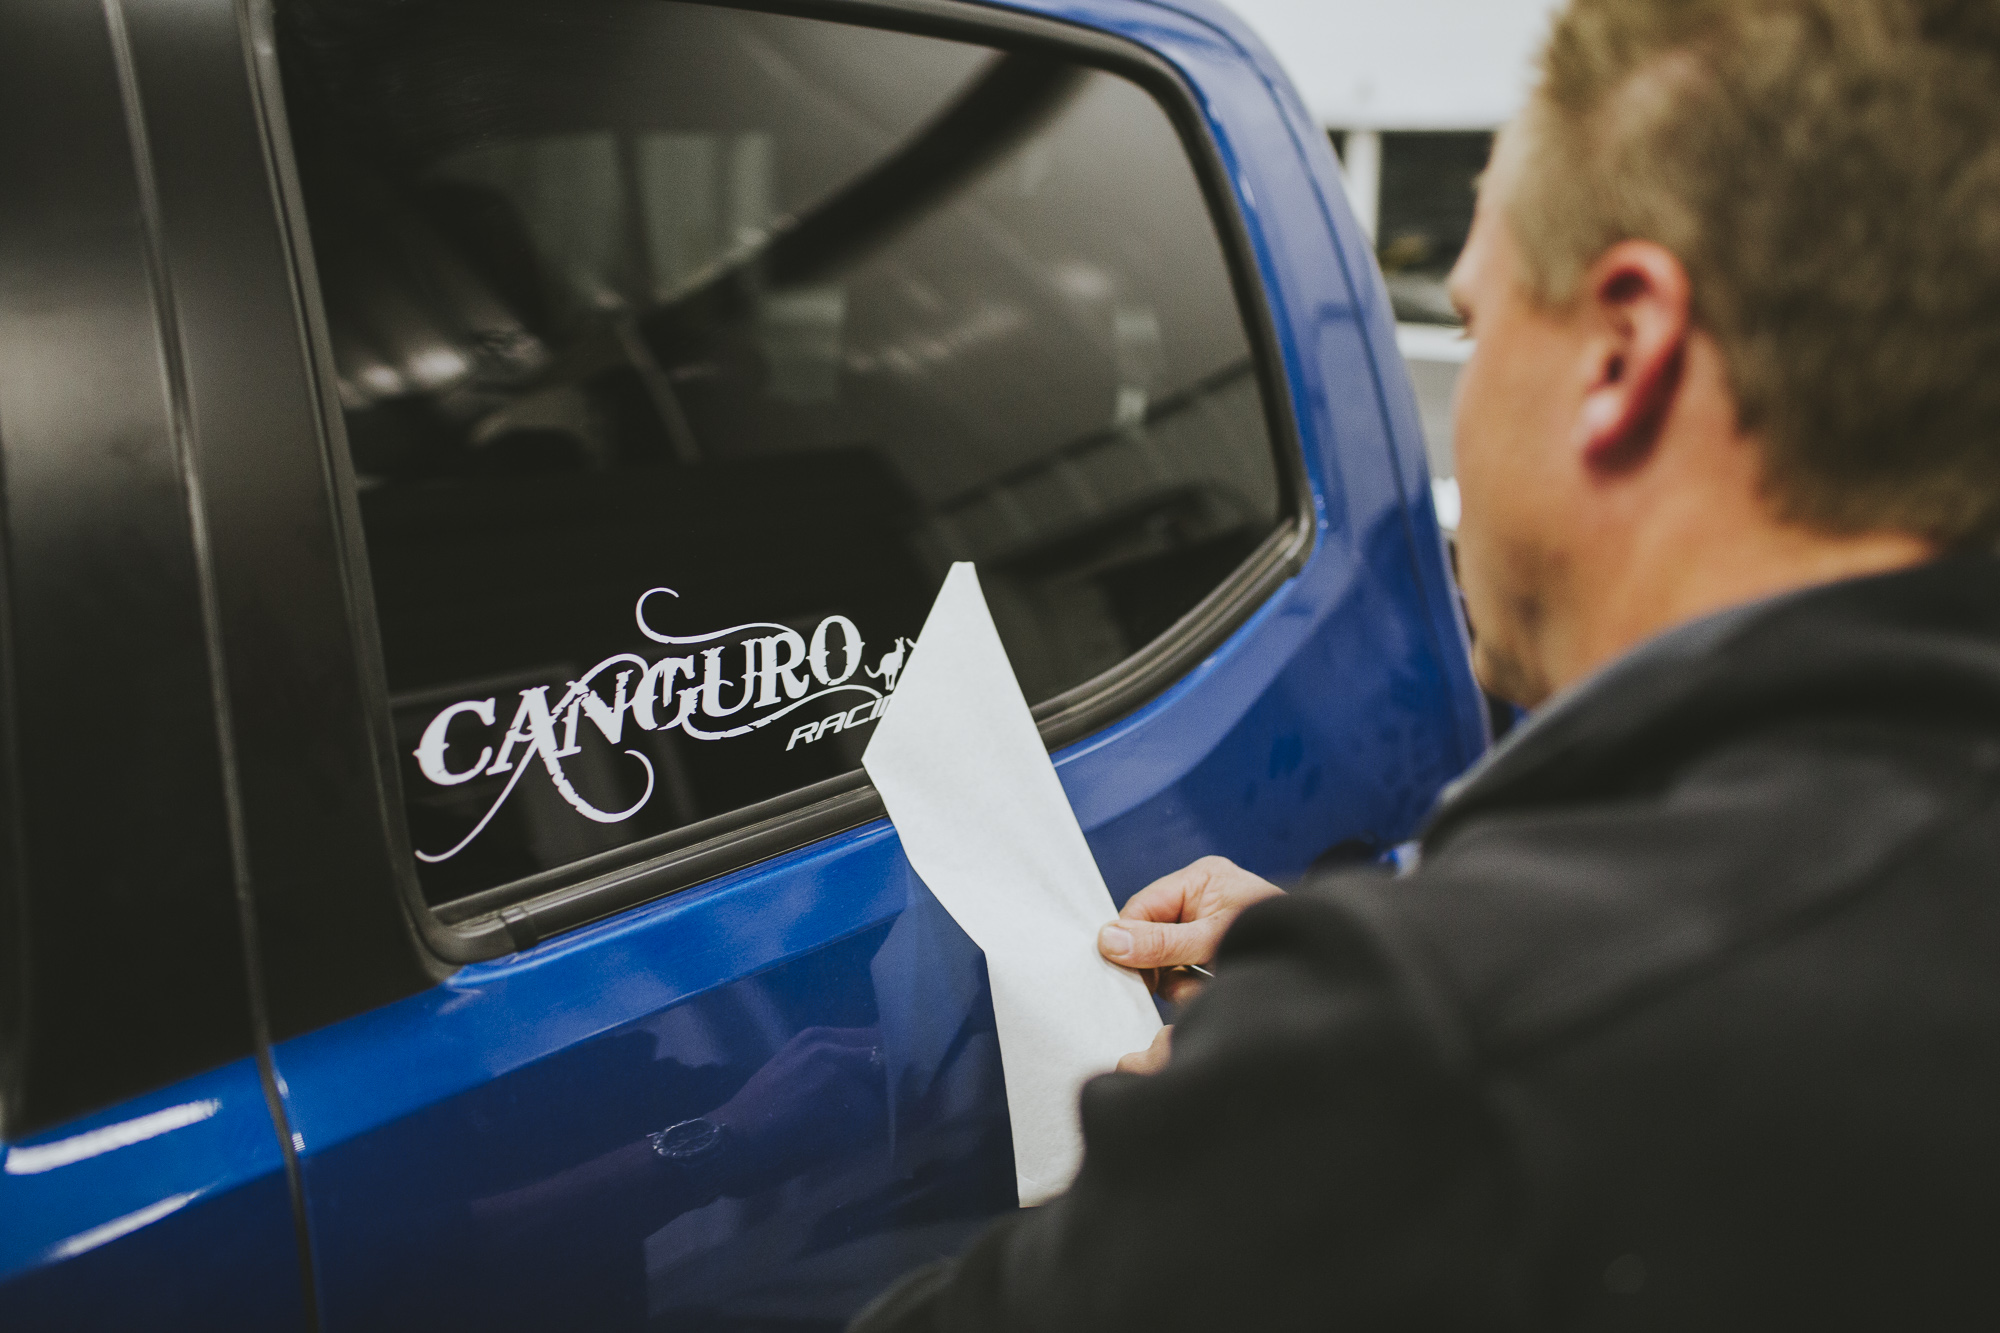 man attaching Canguro Racing decal to Toyota Tacoma